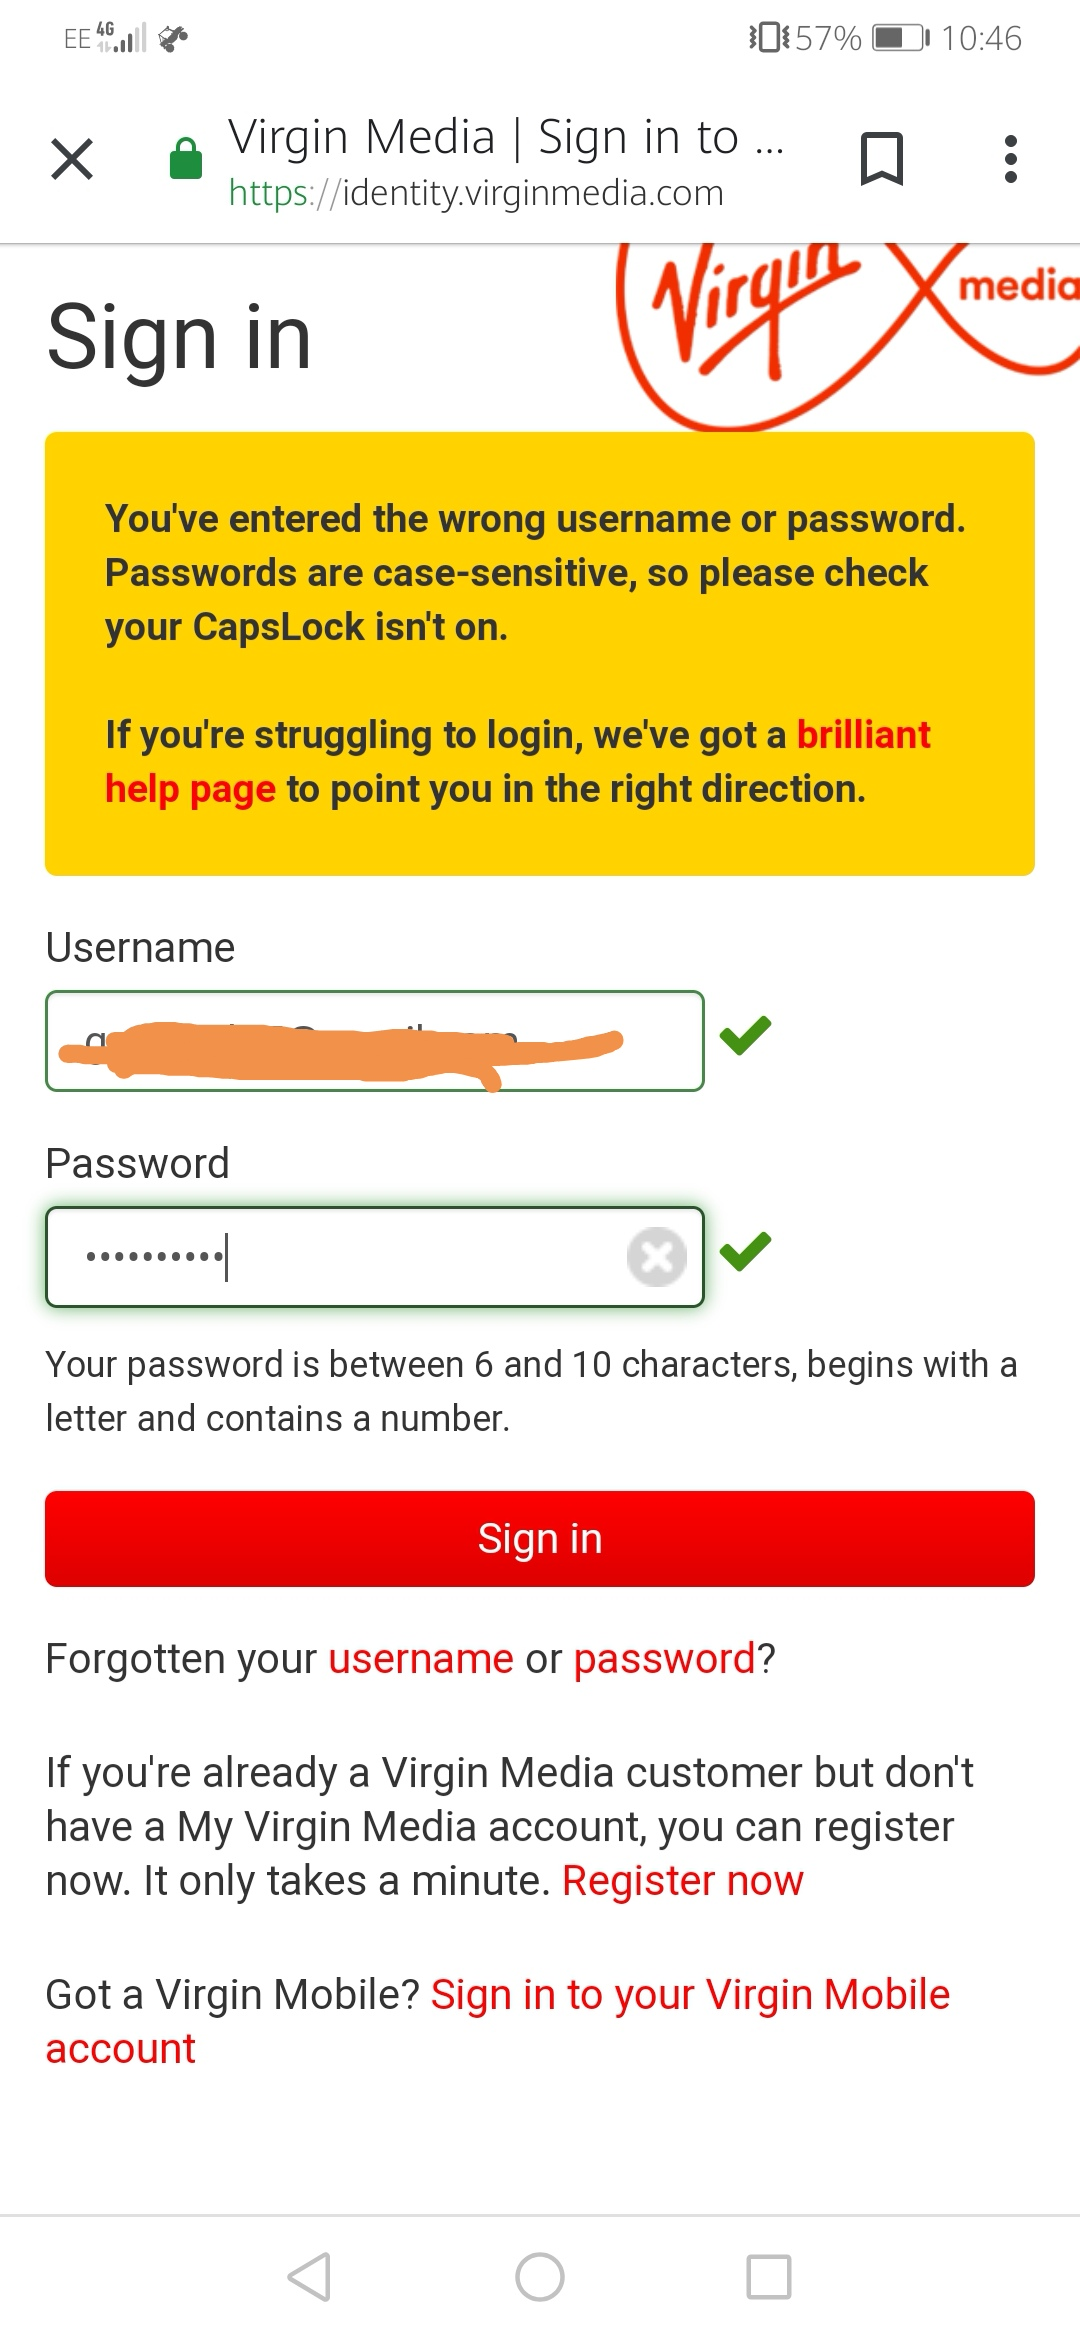 Can't sign in to my Virgin Media account - Virgin Media